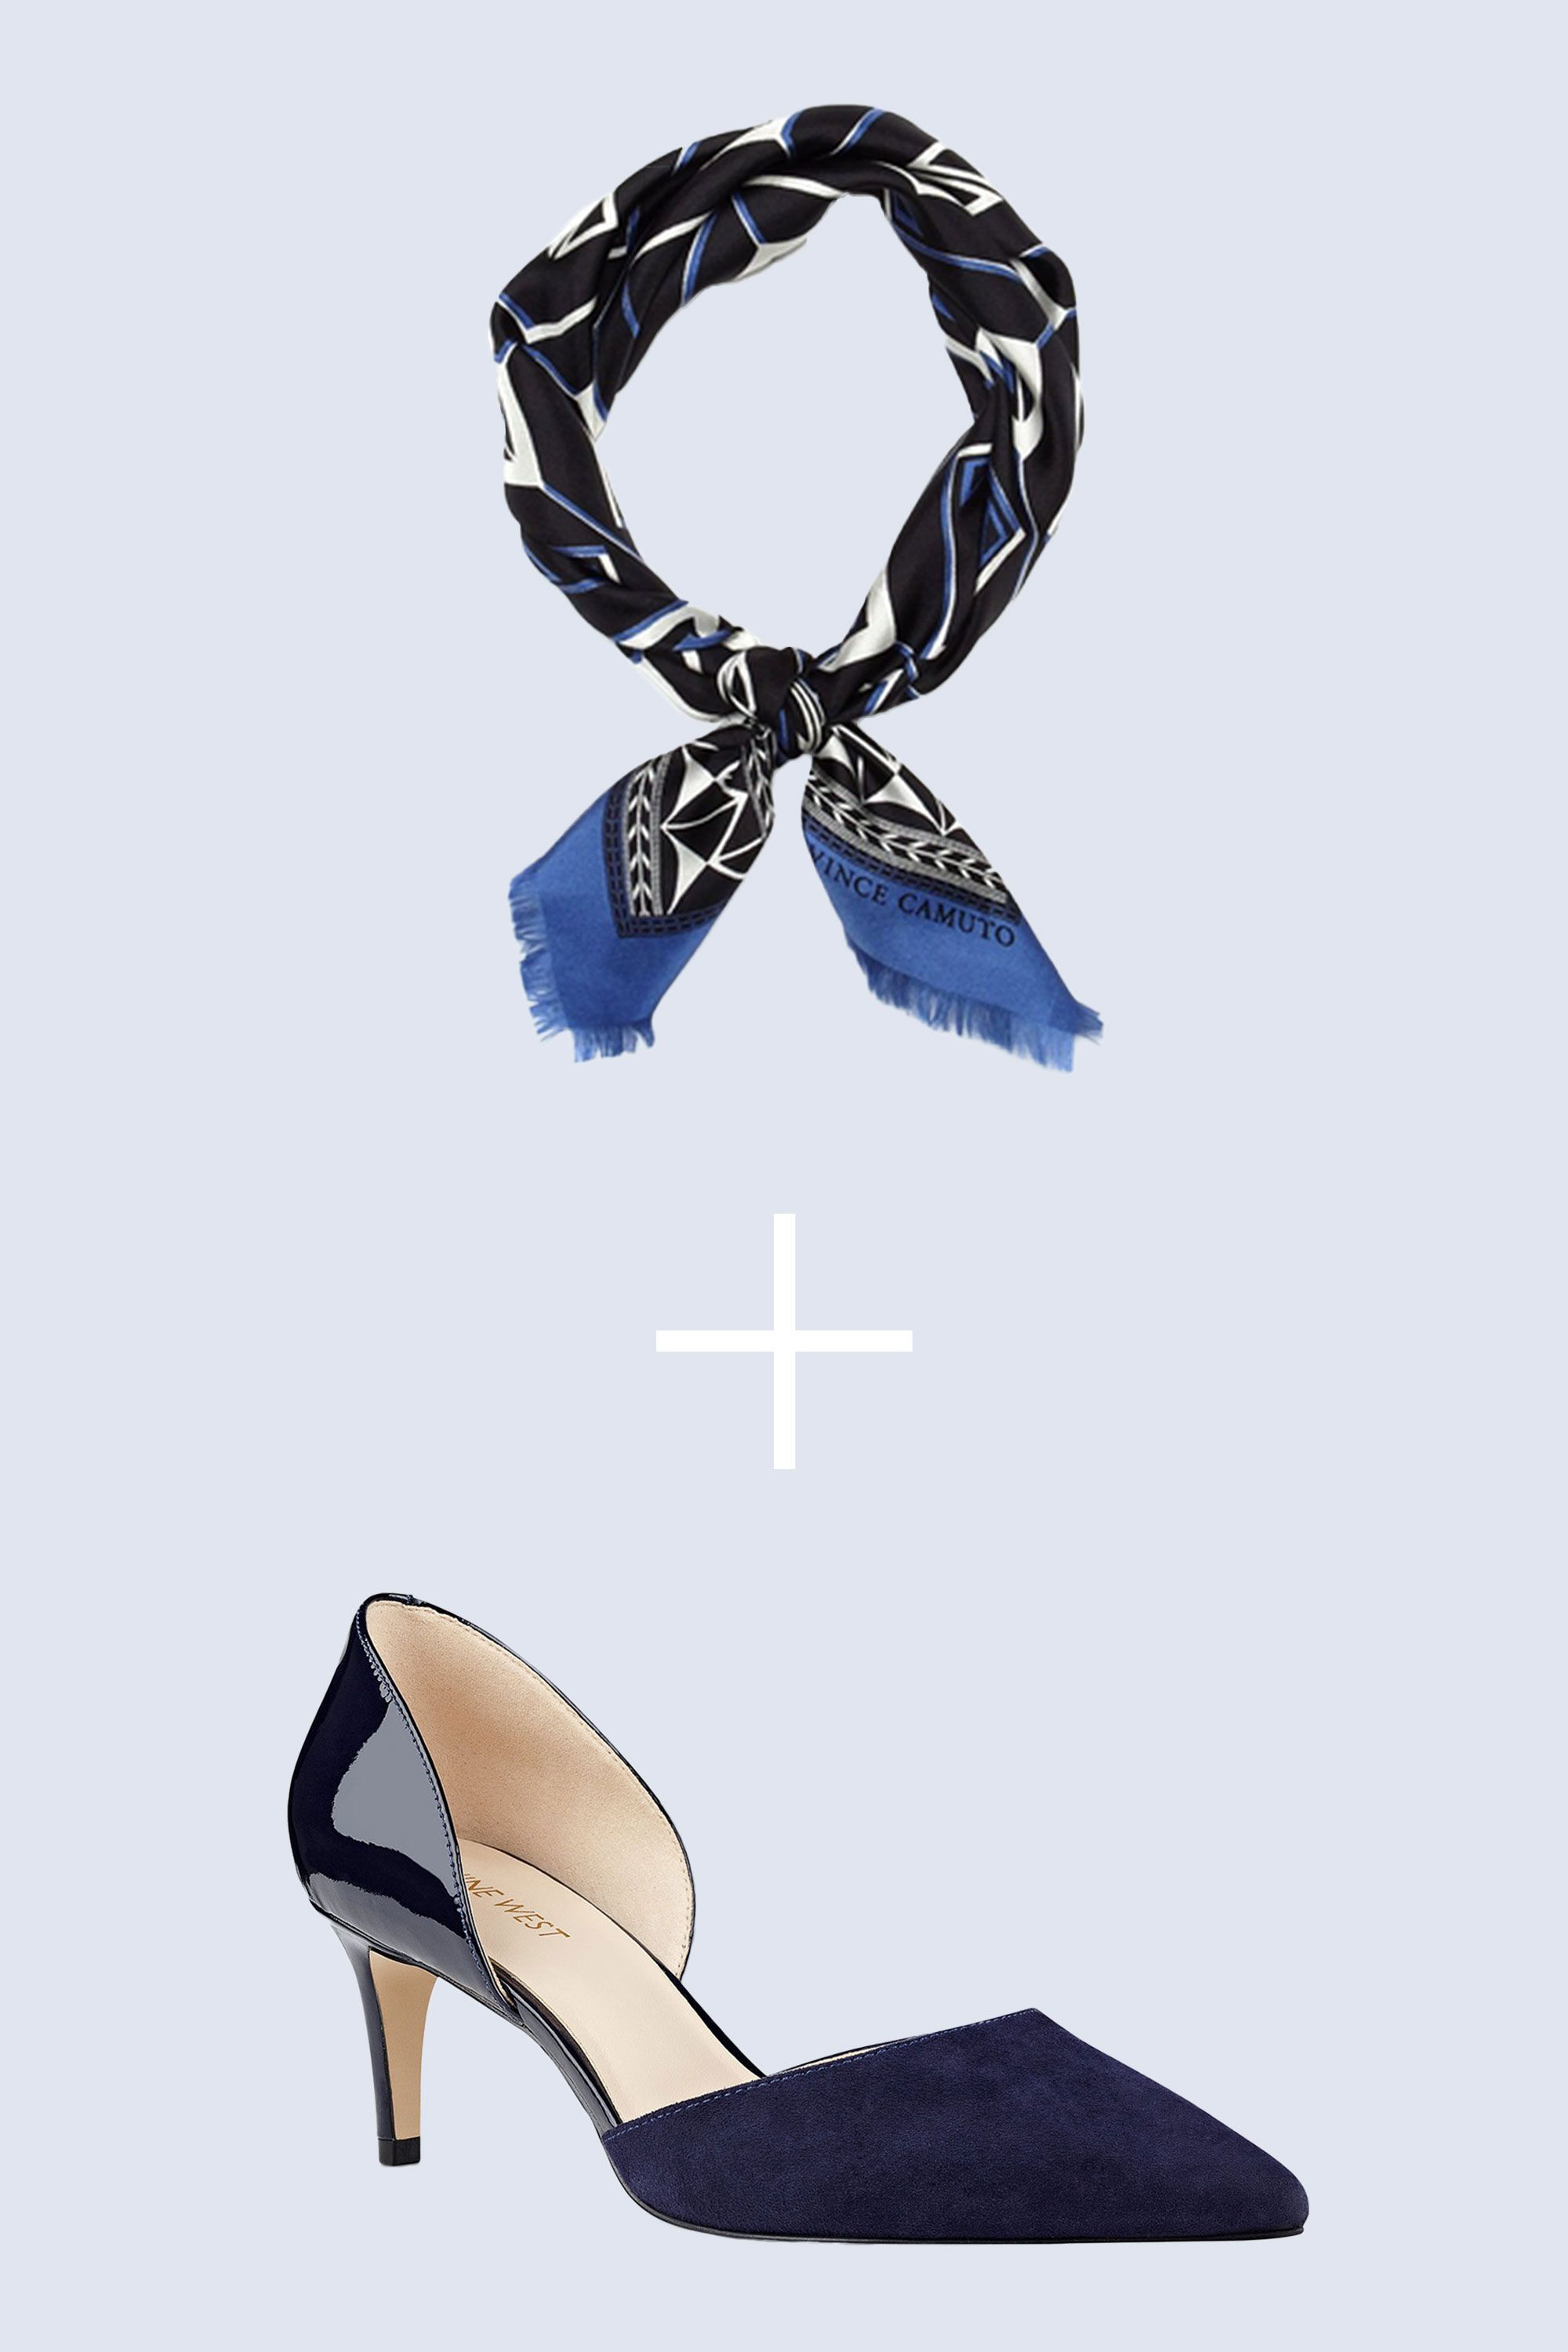 "<p>Every work wardrobe needs a great pump. This double-textured version, with its pointed toe and walkable heel, is as easy to wear as it is sleek. A silky blue scarf (in place of a necklace) lets your inner Parisian-style alter-ego shine. </p><p><strong data-redactor-tag=""strong"">BUY IT: </strong><span class=""redactor-invisible-space"" data-verified=""redactor"" data-redactor-tag=""span"" data-redactor-class=""redactor-invisible-space"">Vince Camuto bandana, $38; <a href=""http://www.vincecamuto.com/vince-camuto-zanzibar-print-bandana/051059424736.html"" target=""_blank"" data-tracking-id=""recirc-text-link"">vincecamuto.com</a>. Nine West pumps, $50; <a href=""http://www.ninewest.com/Solis-Pointy-Toe-d%27Orsay-Pumps/23969159,default,pd.html?variantColor=JJPO3A2&q=solis%20pumps"" target=""_blank"" data-tracking-id=""recirc-text-link"">ninewest.com</a></span><br></p>"